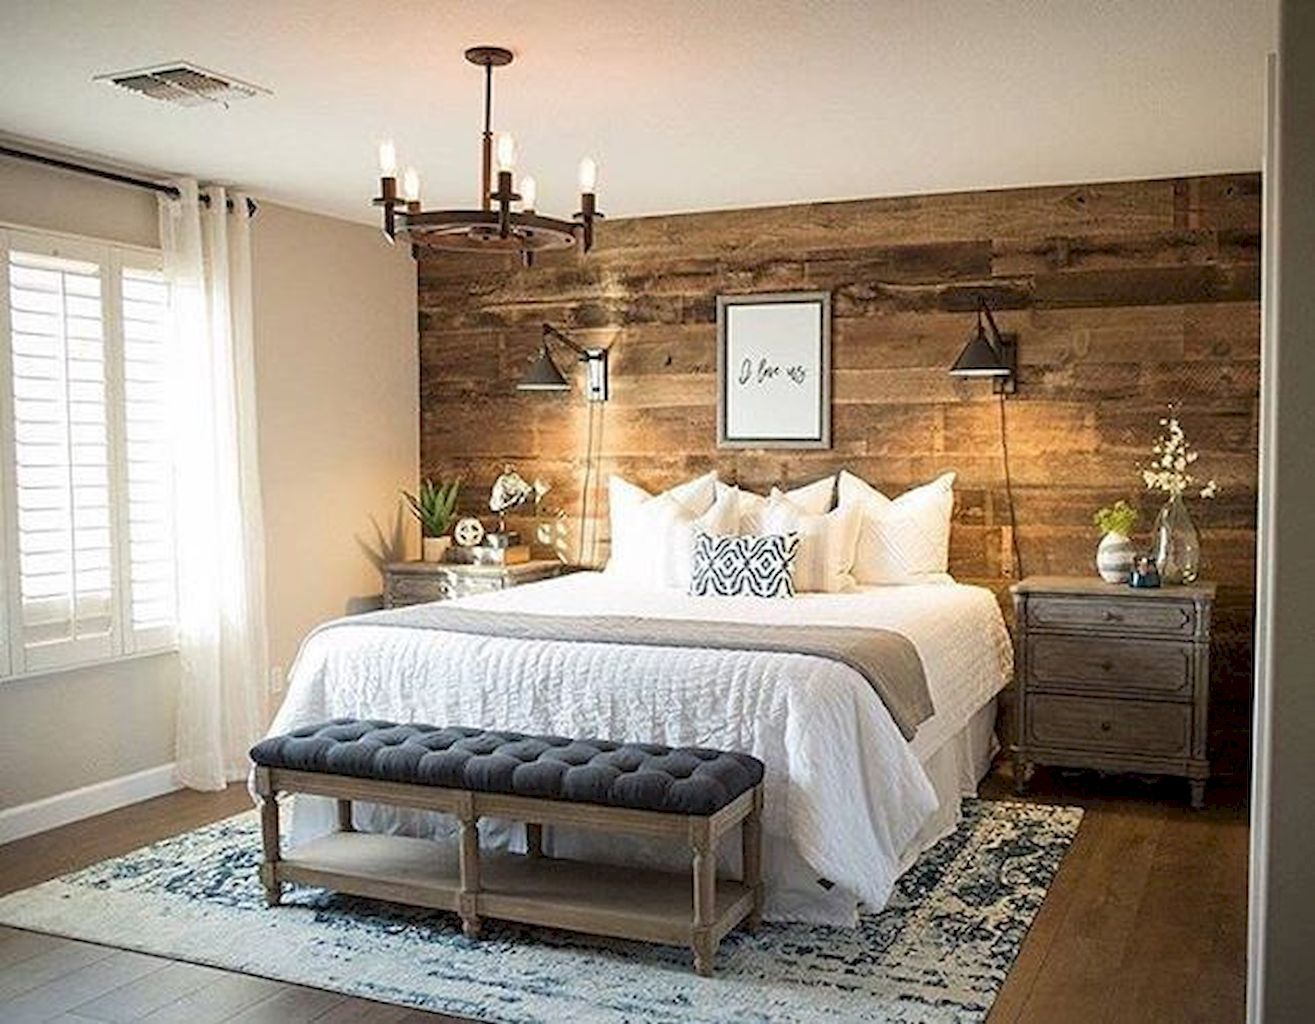 Beautiful master bedroom decorating ideas 42 Pinterest